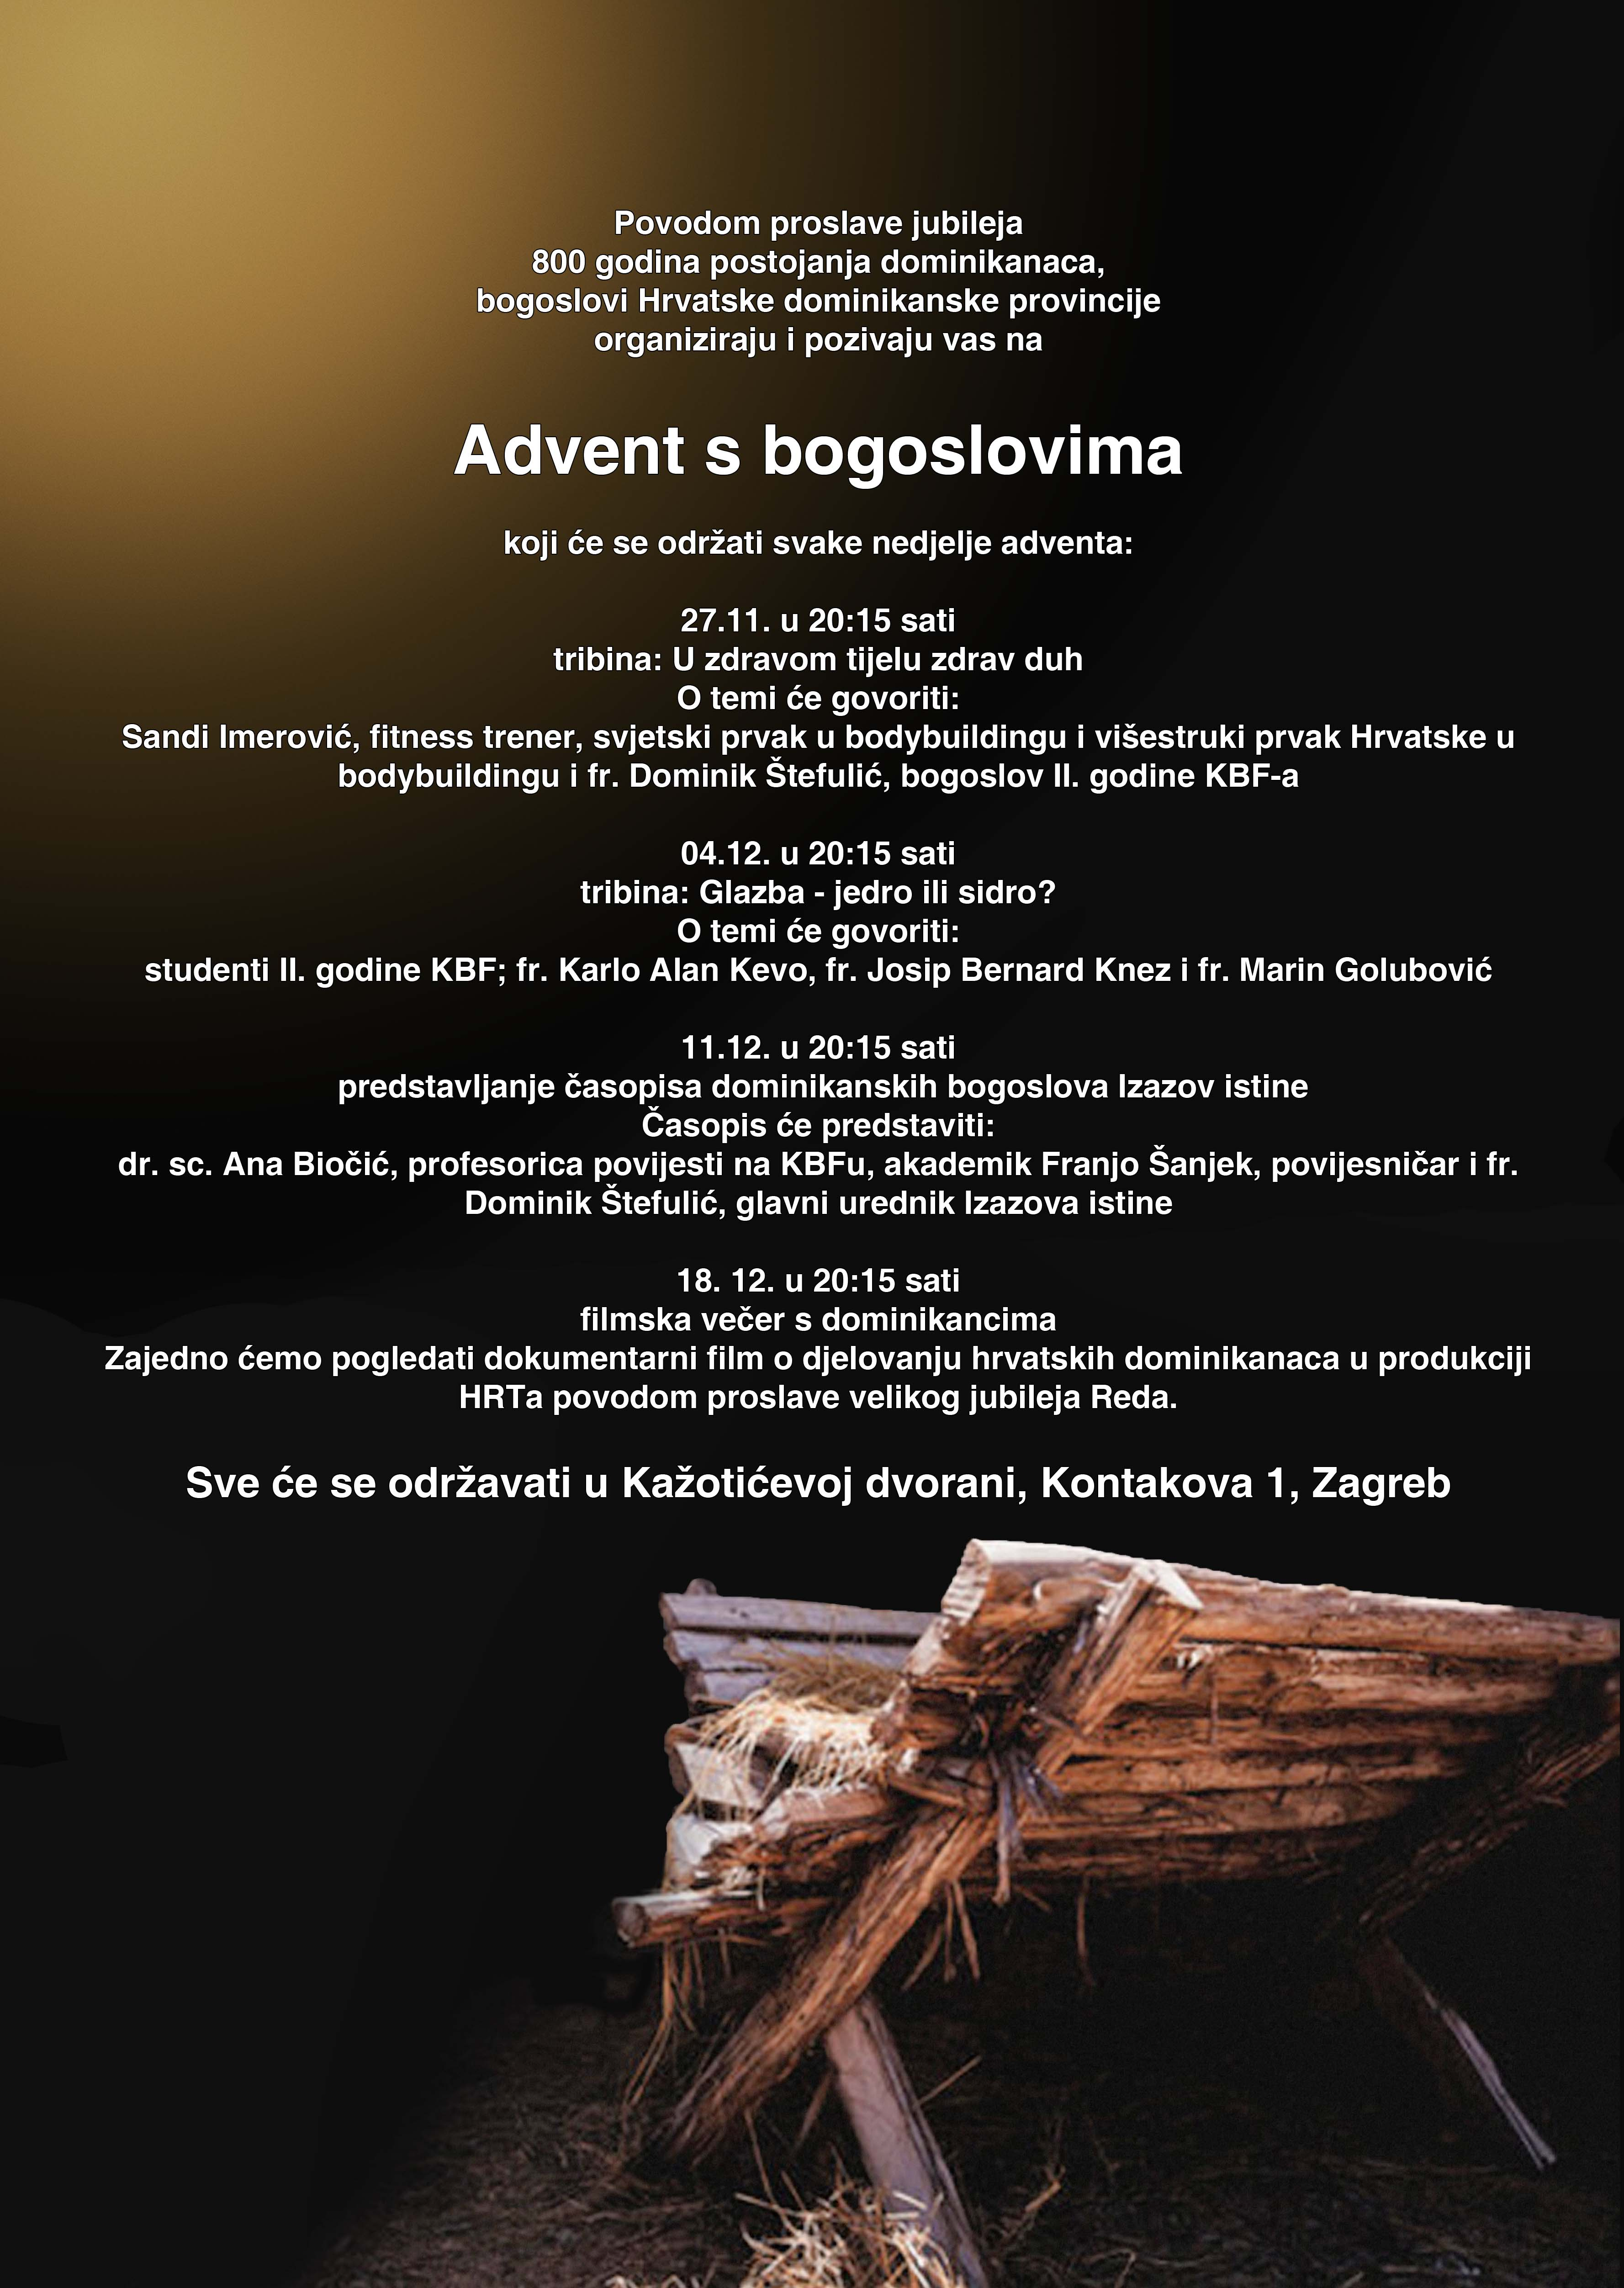 2016.11.17. Advent s bogoslovima 1